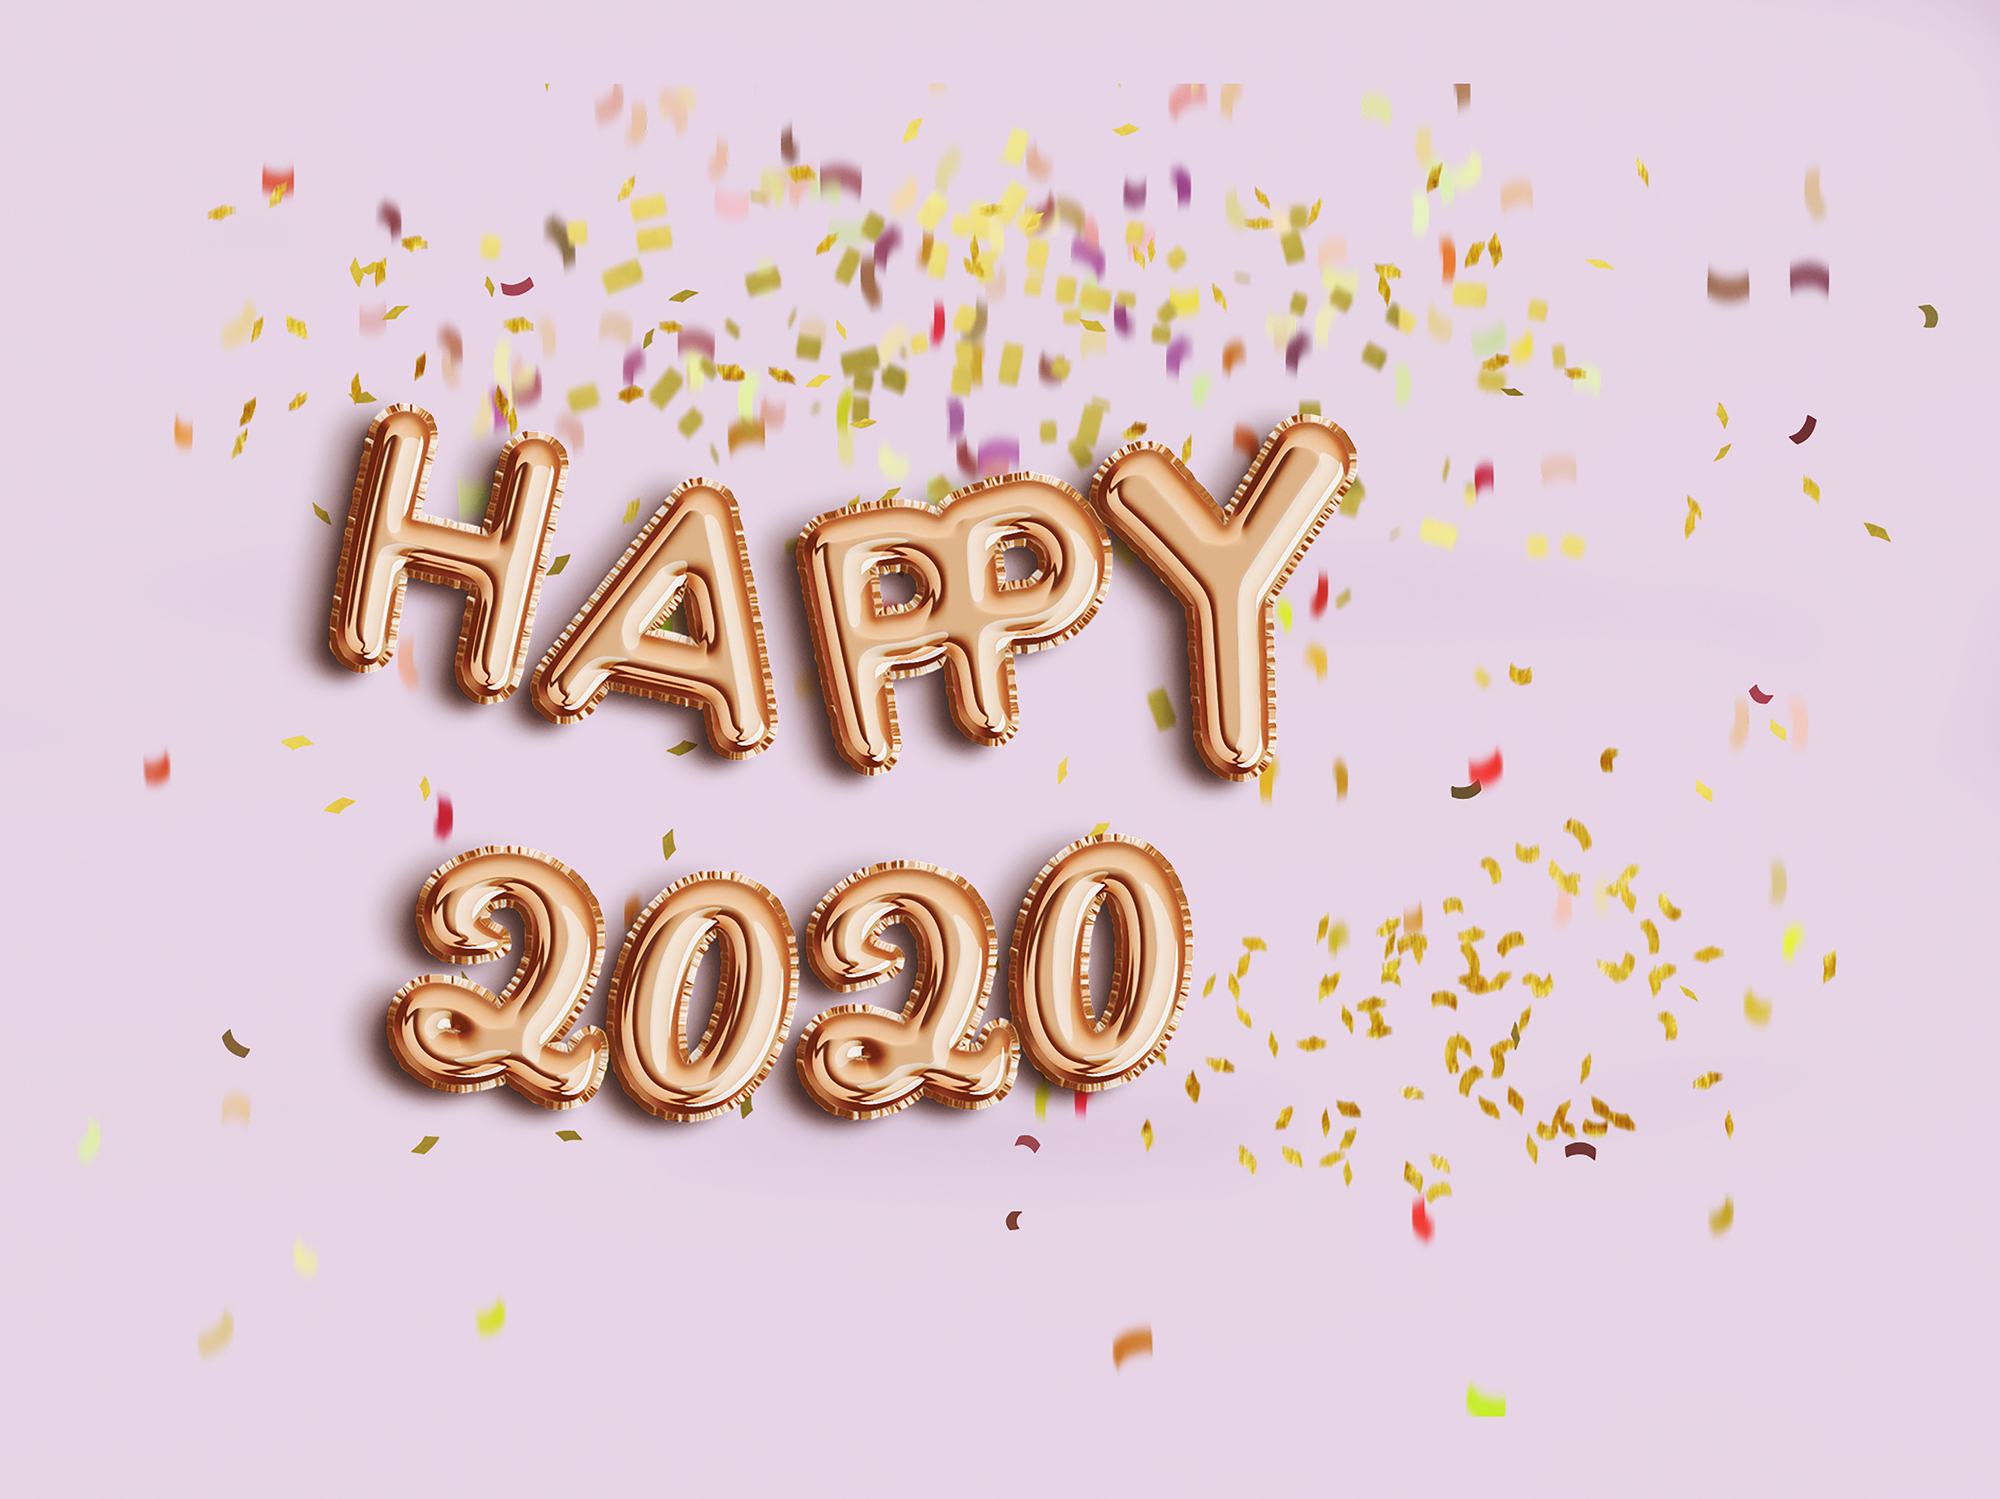 New Year quotes, messages and wishes to send to start 2020